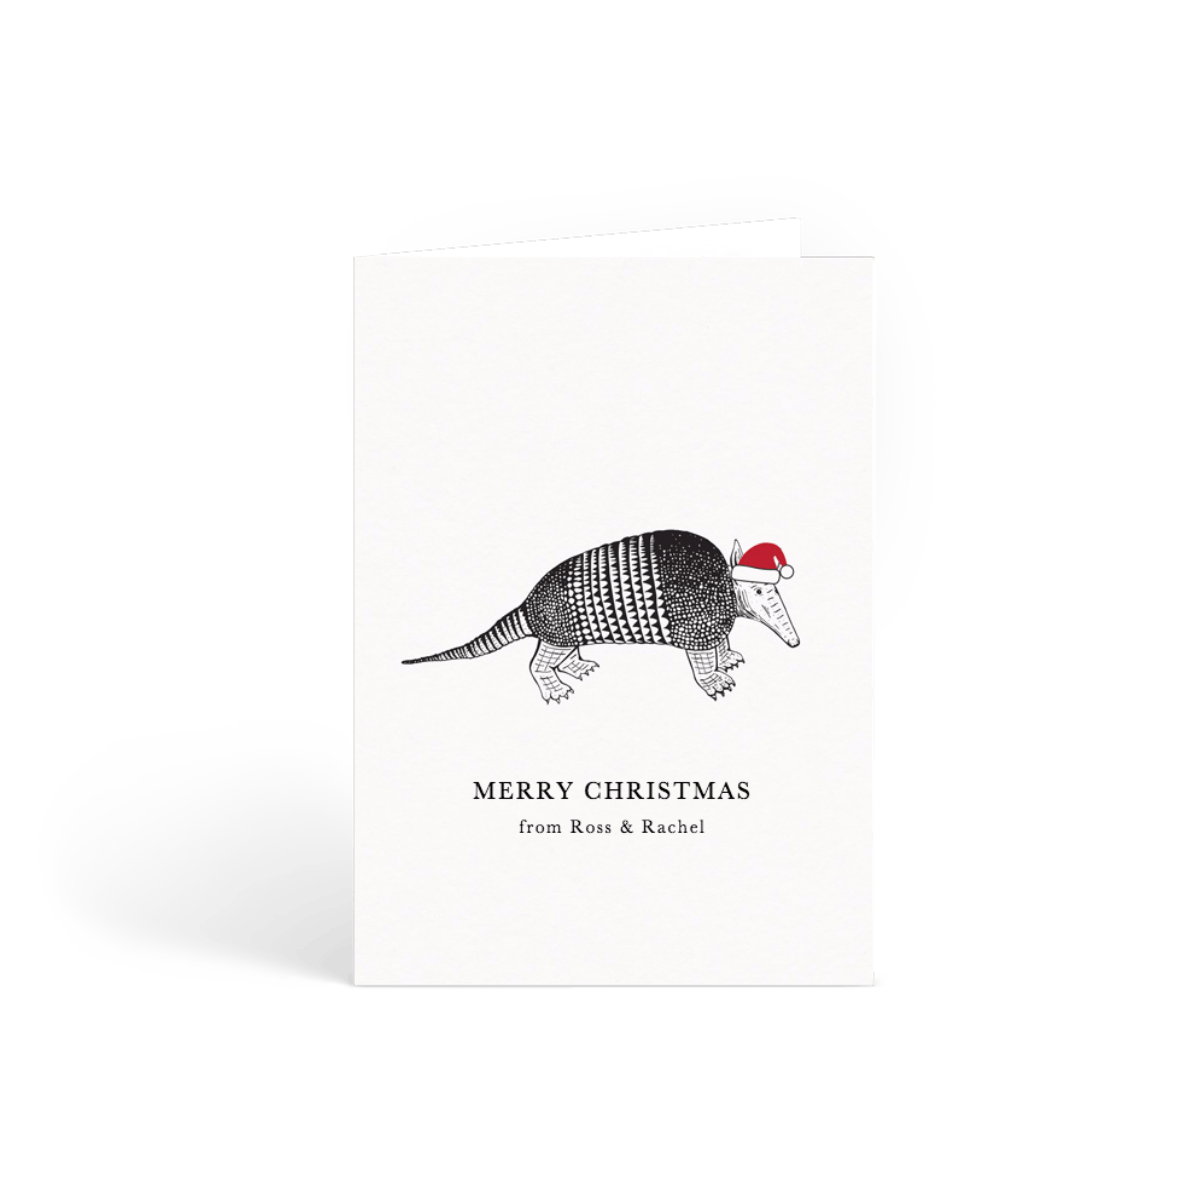 Https%3a%2f%2fwww.papier.com%2fproduct image%2f12494%2f2%2fchristmas armadillo 3146 front 1476961562.png?ixlib=rb 1.1